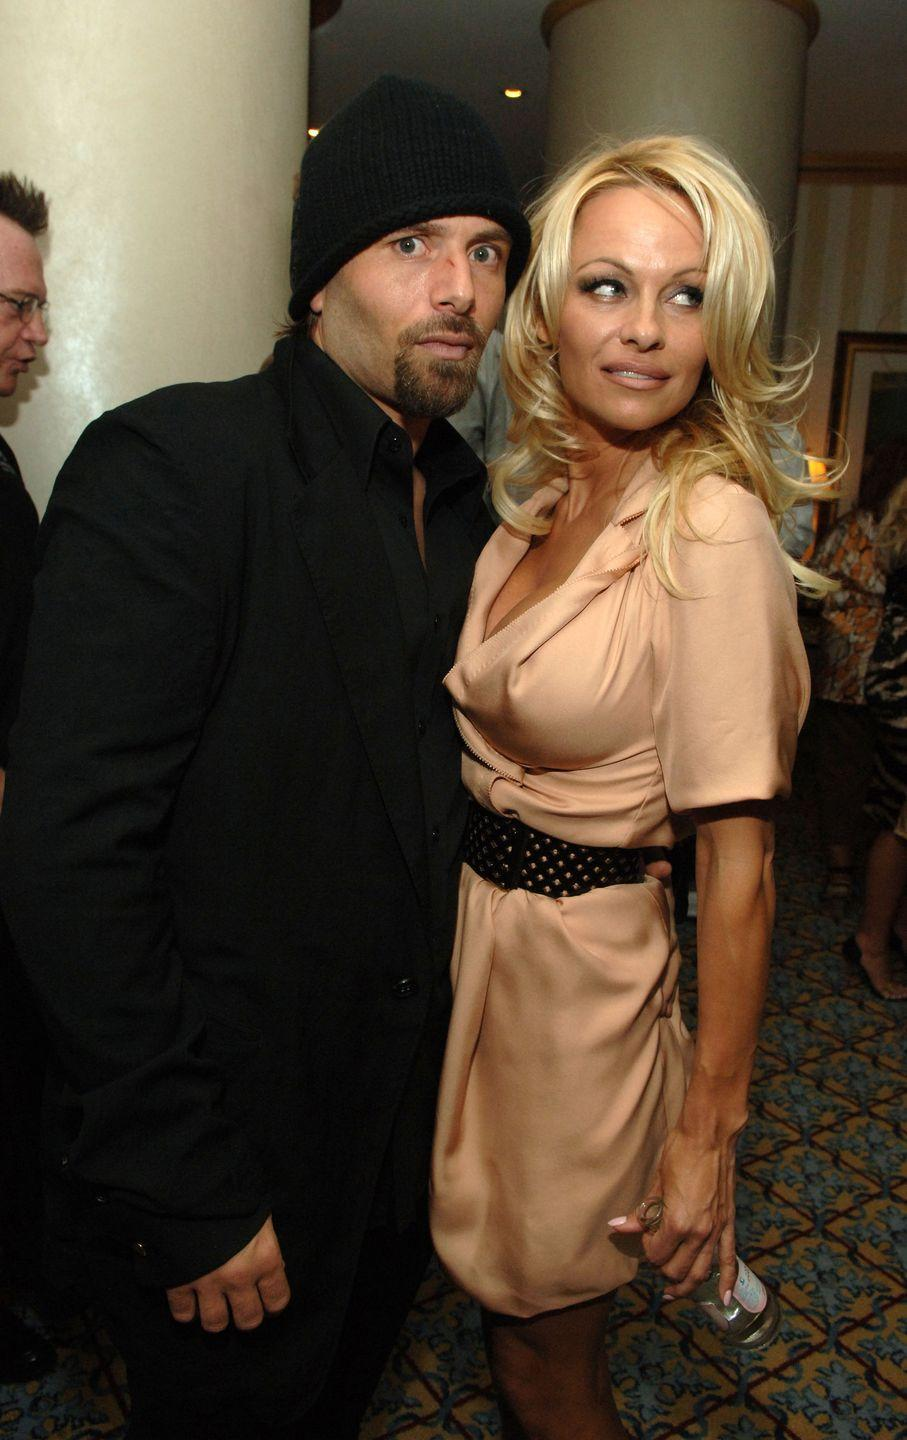 """<p>Pamela Anderson wed her longtime friend, Rick Salomon, in Las Vegas in October 2007. It was the <em>Baywatch </em>star's third marriage, but it didn't last long, as she <a href=""""https://www.latimes.com/entertainment/gossip/la-et-mg-pamela-anderson-rick-salomon-divorce-20150429-story.html"""" rel=""""nofollow noopener"""" target=""""_blank"""" data-ylk=""""slk:petitioned for an annulment"""" class=""""link rapid-noclick-resp"""">petitioned for an annulment</a> two months later. The couple's marriage was annulled in 2008 and Pamela reunited with her <em>other </em>ex-husband, Tommy Lee, shortly after. Ready for a curveball? In 2014, Pamela and Rick shocked everyone when they announced they'd secretly tied the knot for the second time. Their union <a href=""""https://www.hellomagazine.com/celebrities/2014070919818/pamela-anderson-divorce-rick-salmon-second-time/"""" rel=""""nofollow noopener"""" target=""""_blank"""" data-ylk=""""slk:lasted six months"""" class=""""link rapid-noclick-resp"""">lasted six months</a> this time.</p>"""